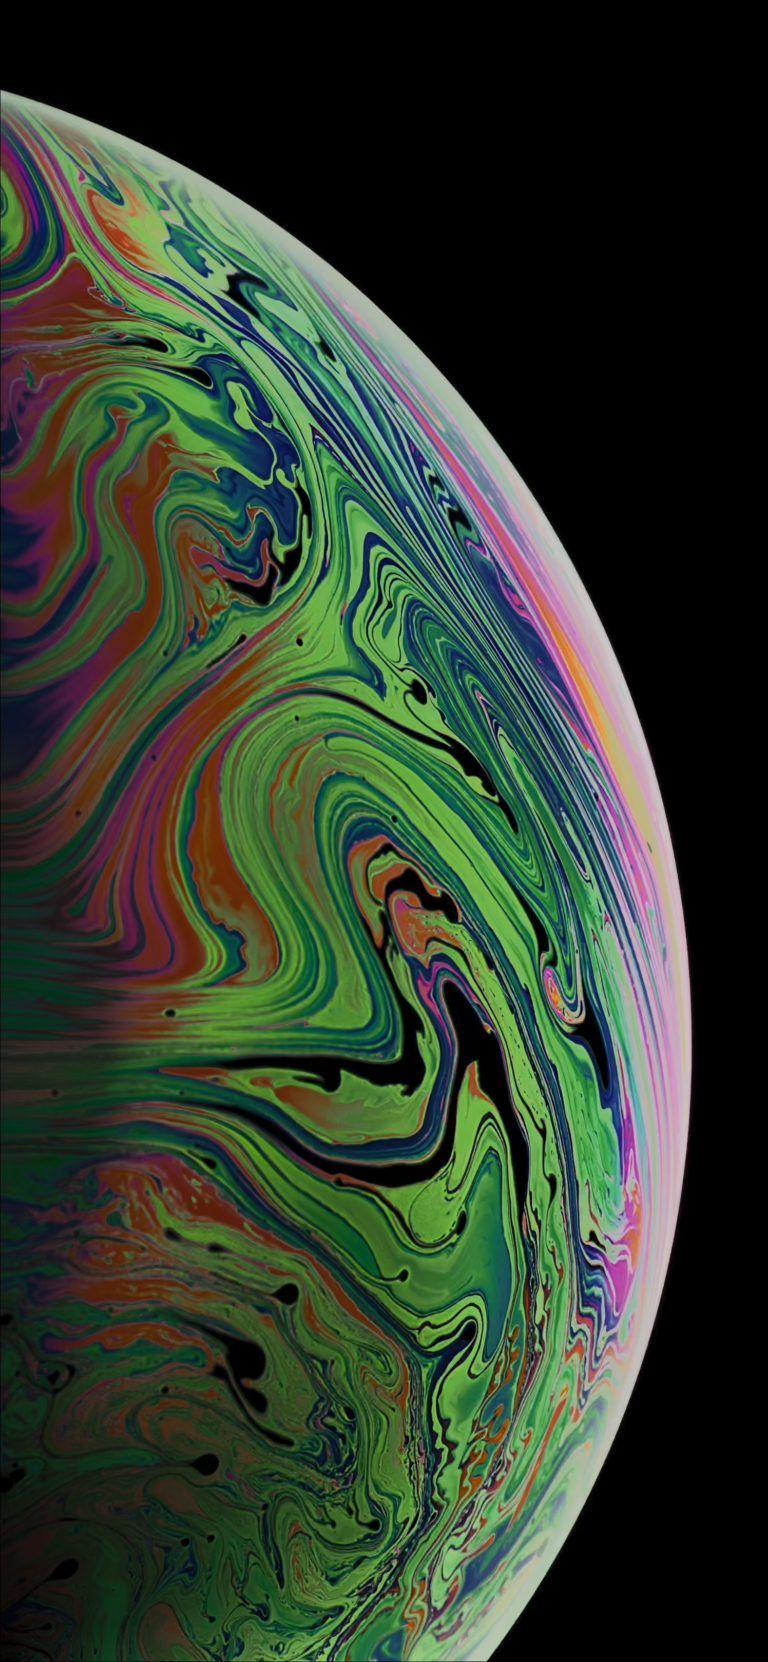 iPhone XS XR Wallpapers Apple iphone, Elma duvar kağıdı